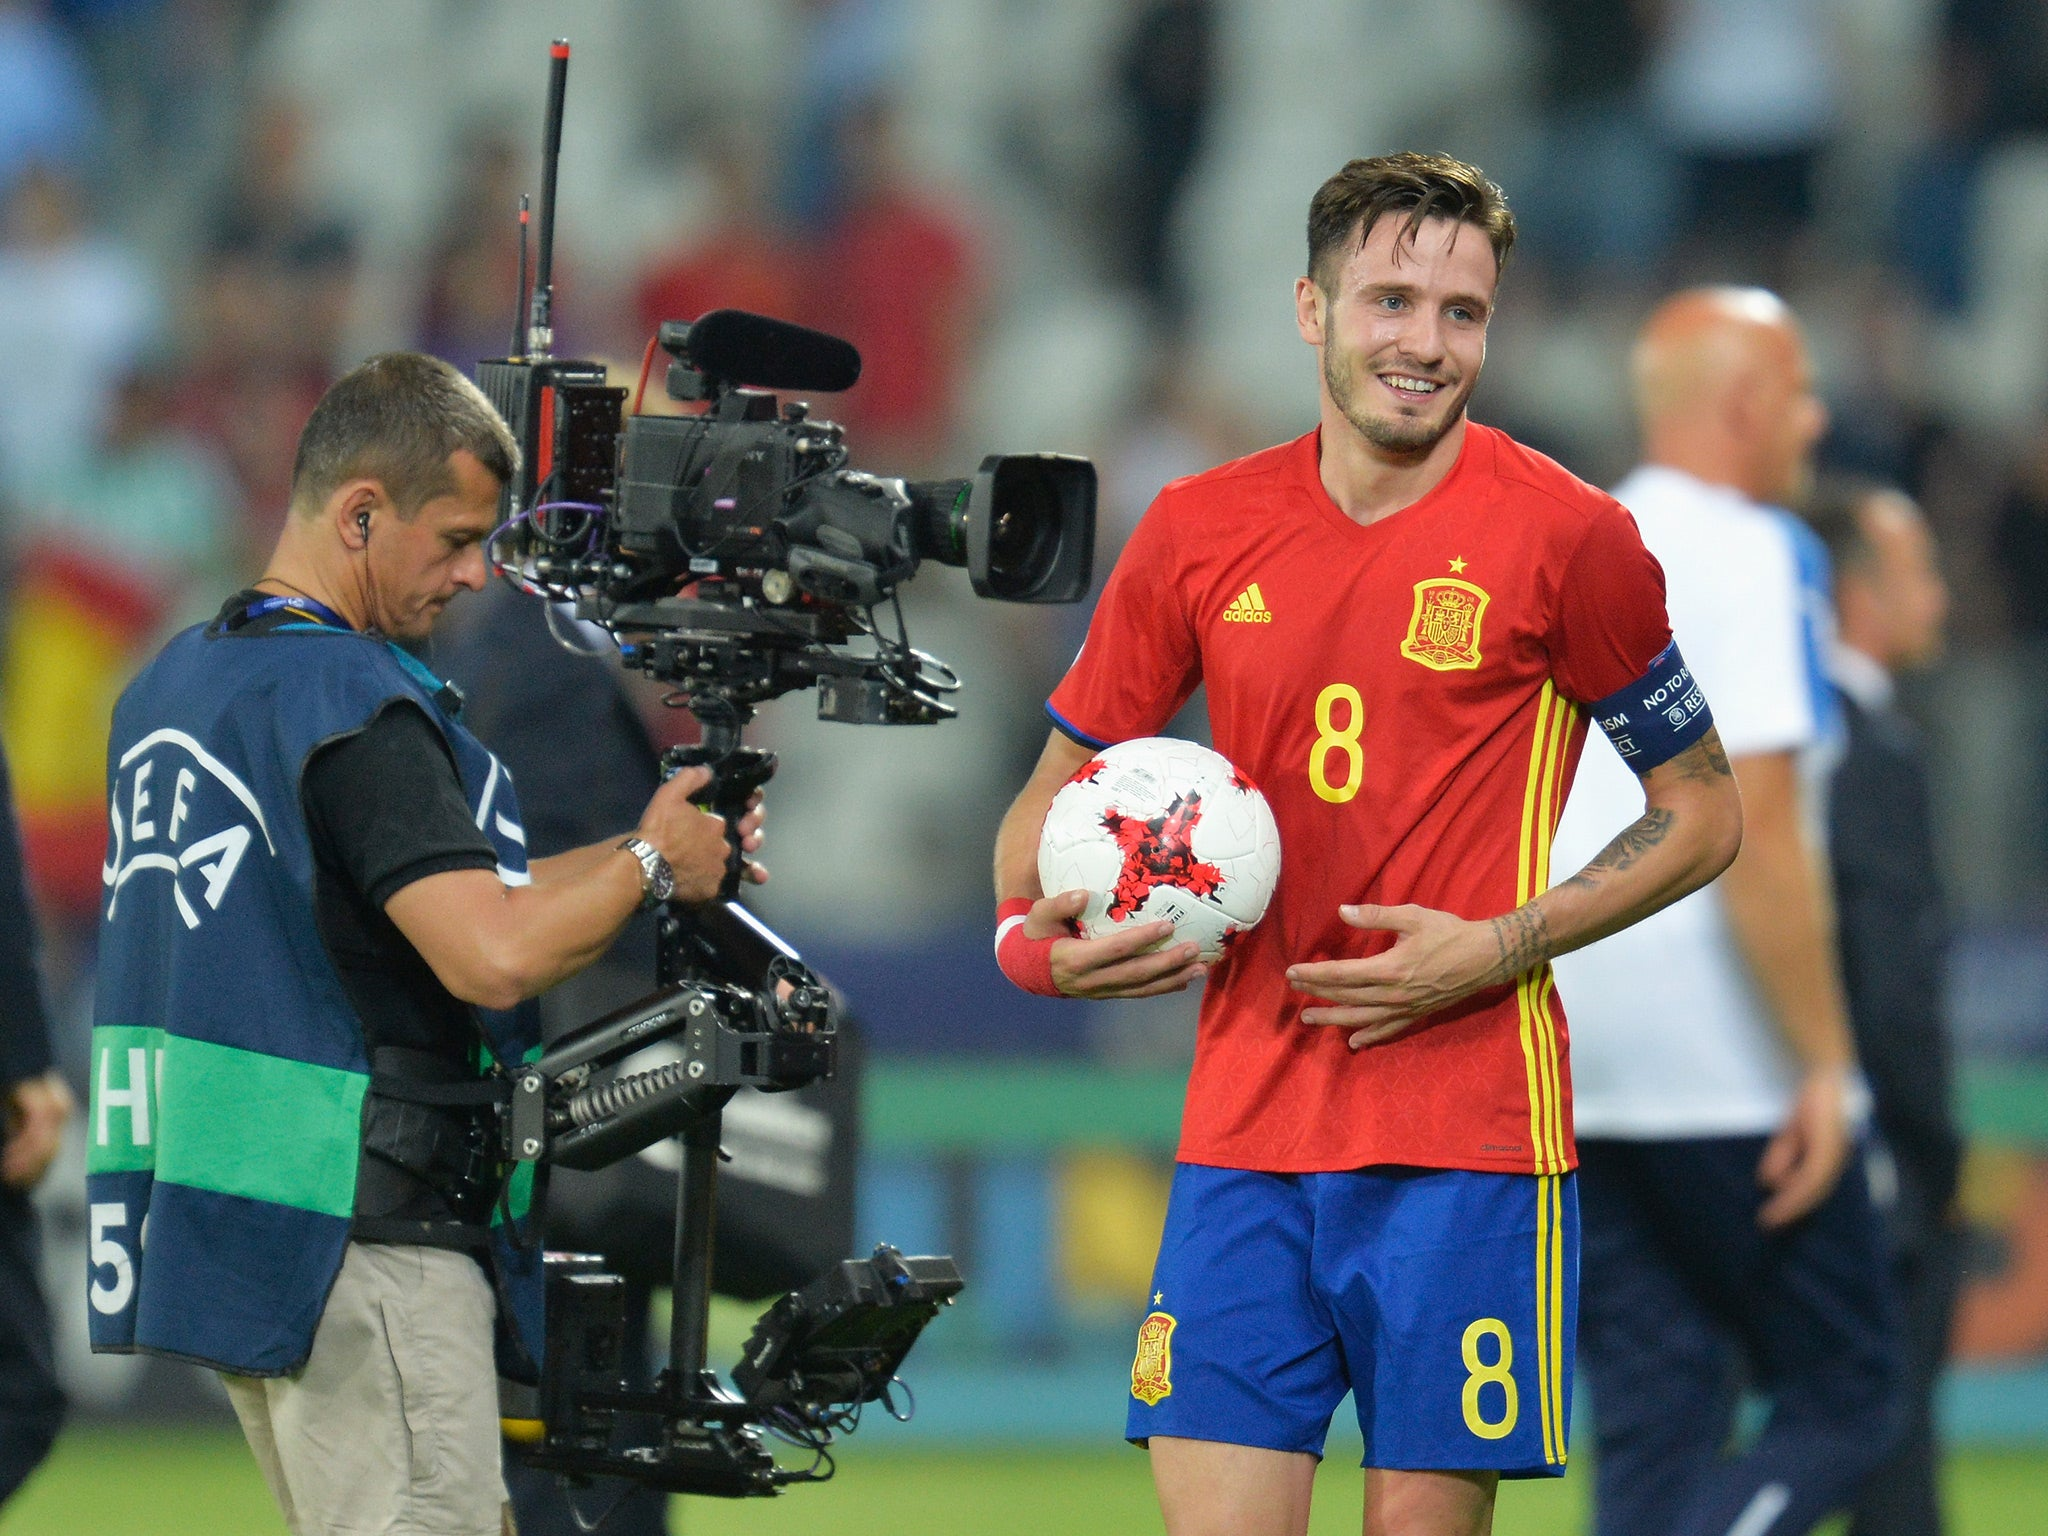 Spain's run to U21 final carries a valuable lesson for England